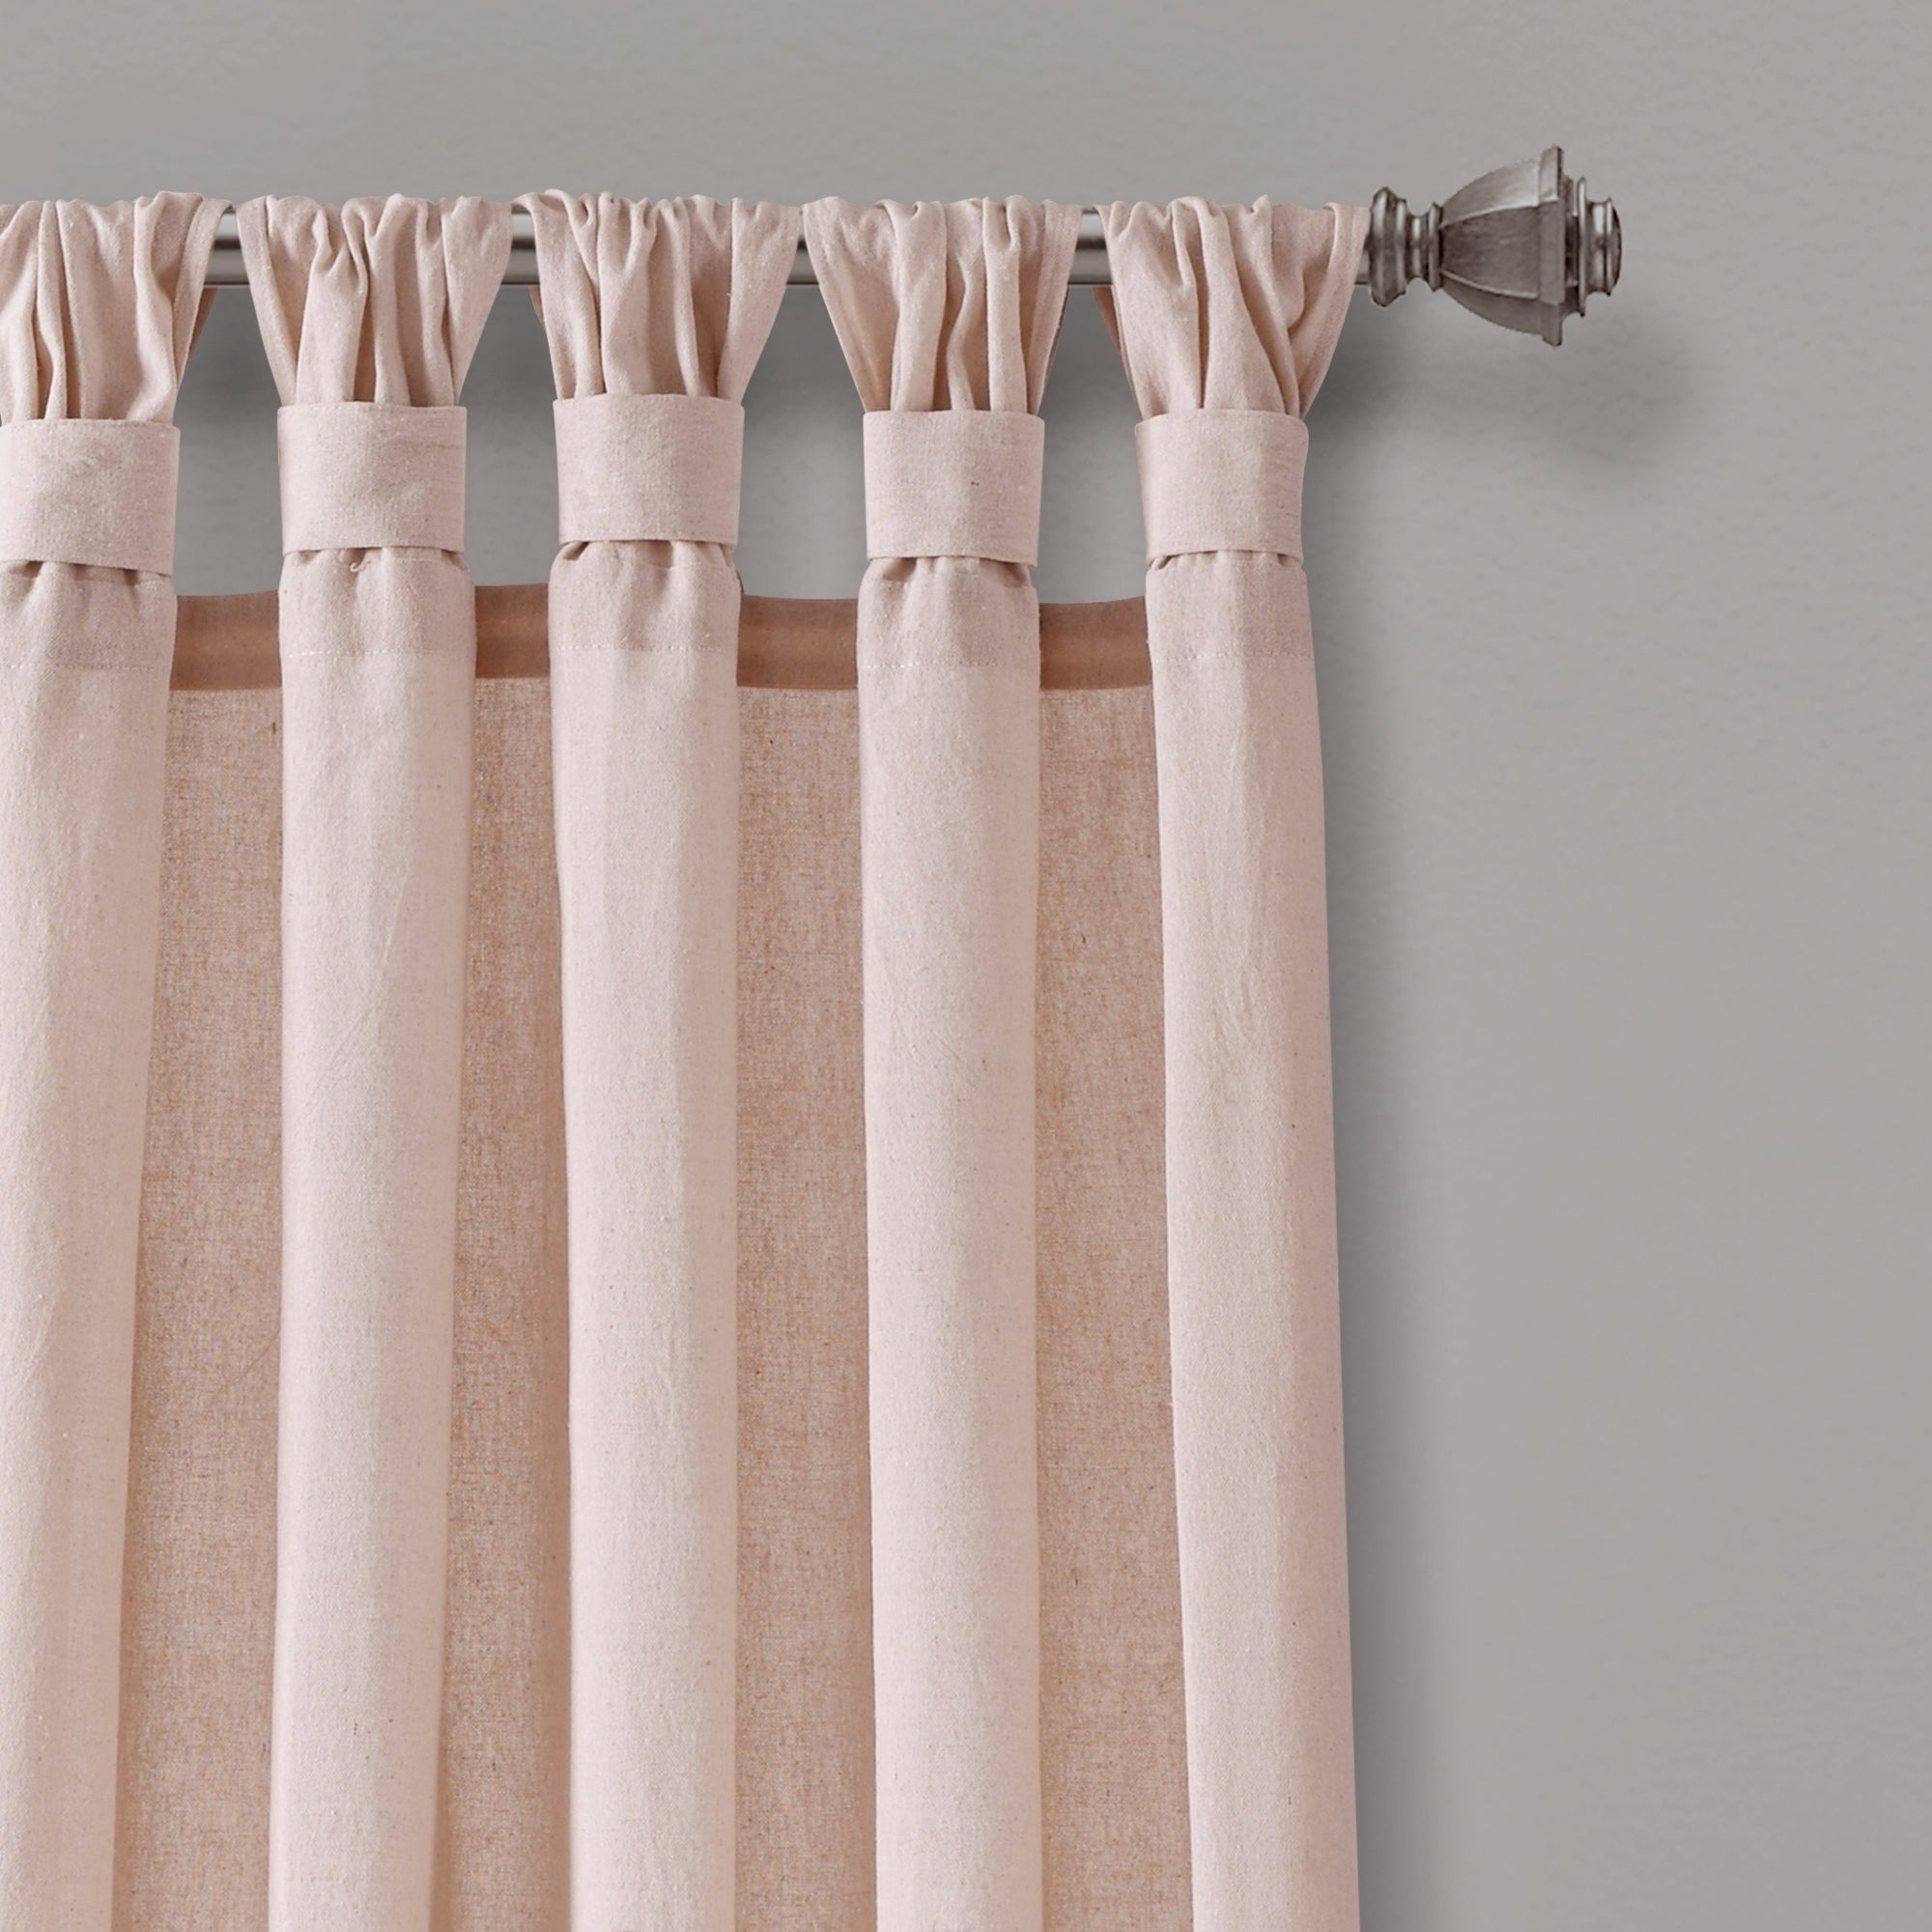 Knotted Tab Top Window Curtain Panel Pairs Throughout Recent Porch & Den Alsea Burlap Knotted Tab Top Window Curtain Panel Pair (Gallery 4 of 20)